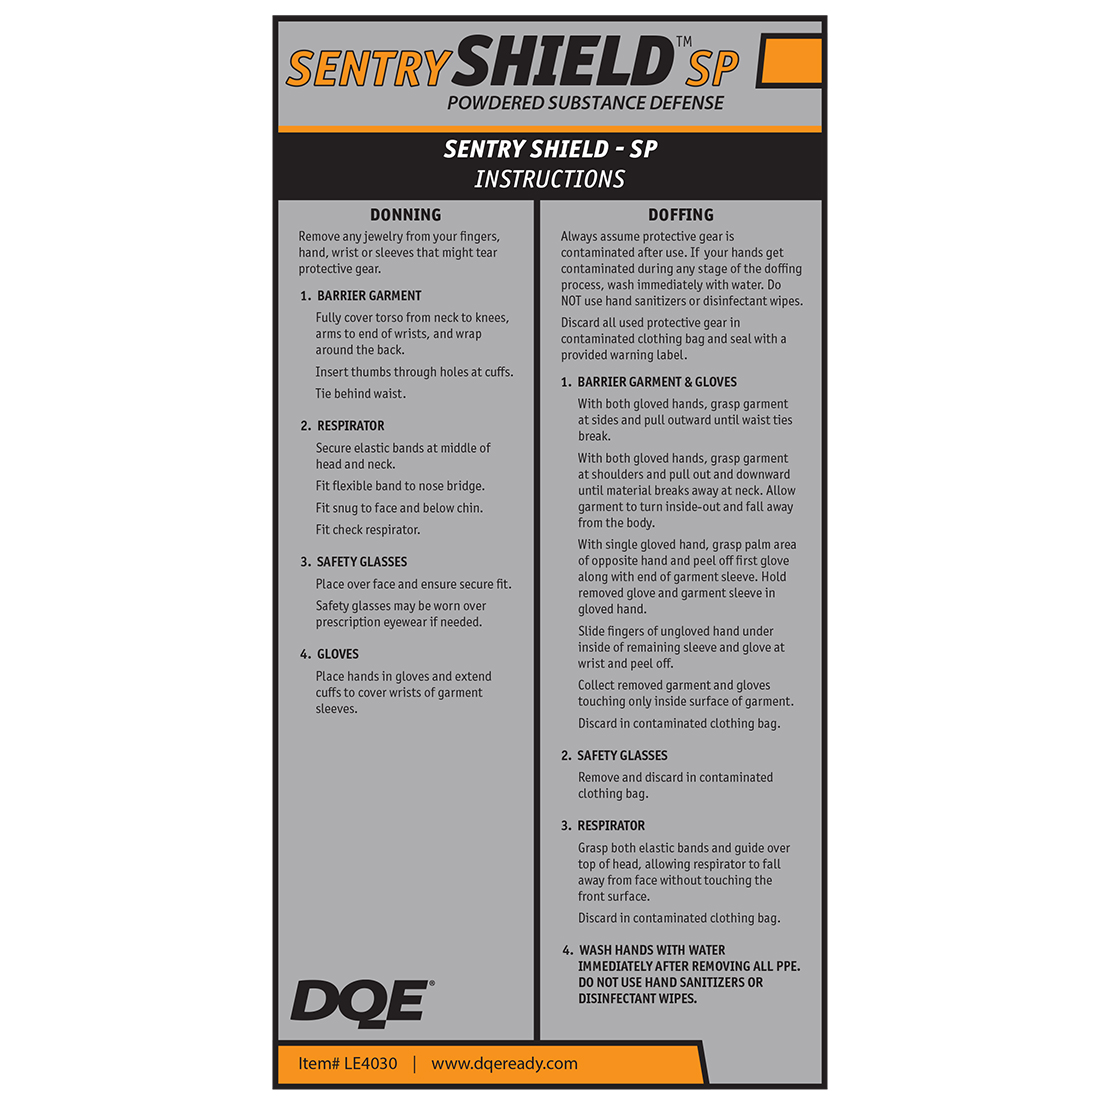 Sentry Shield SP - Powdered Substance Defense Kit